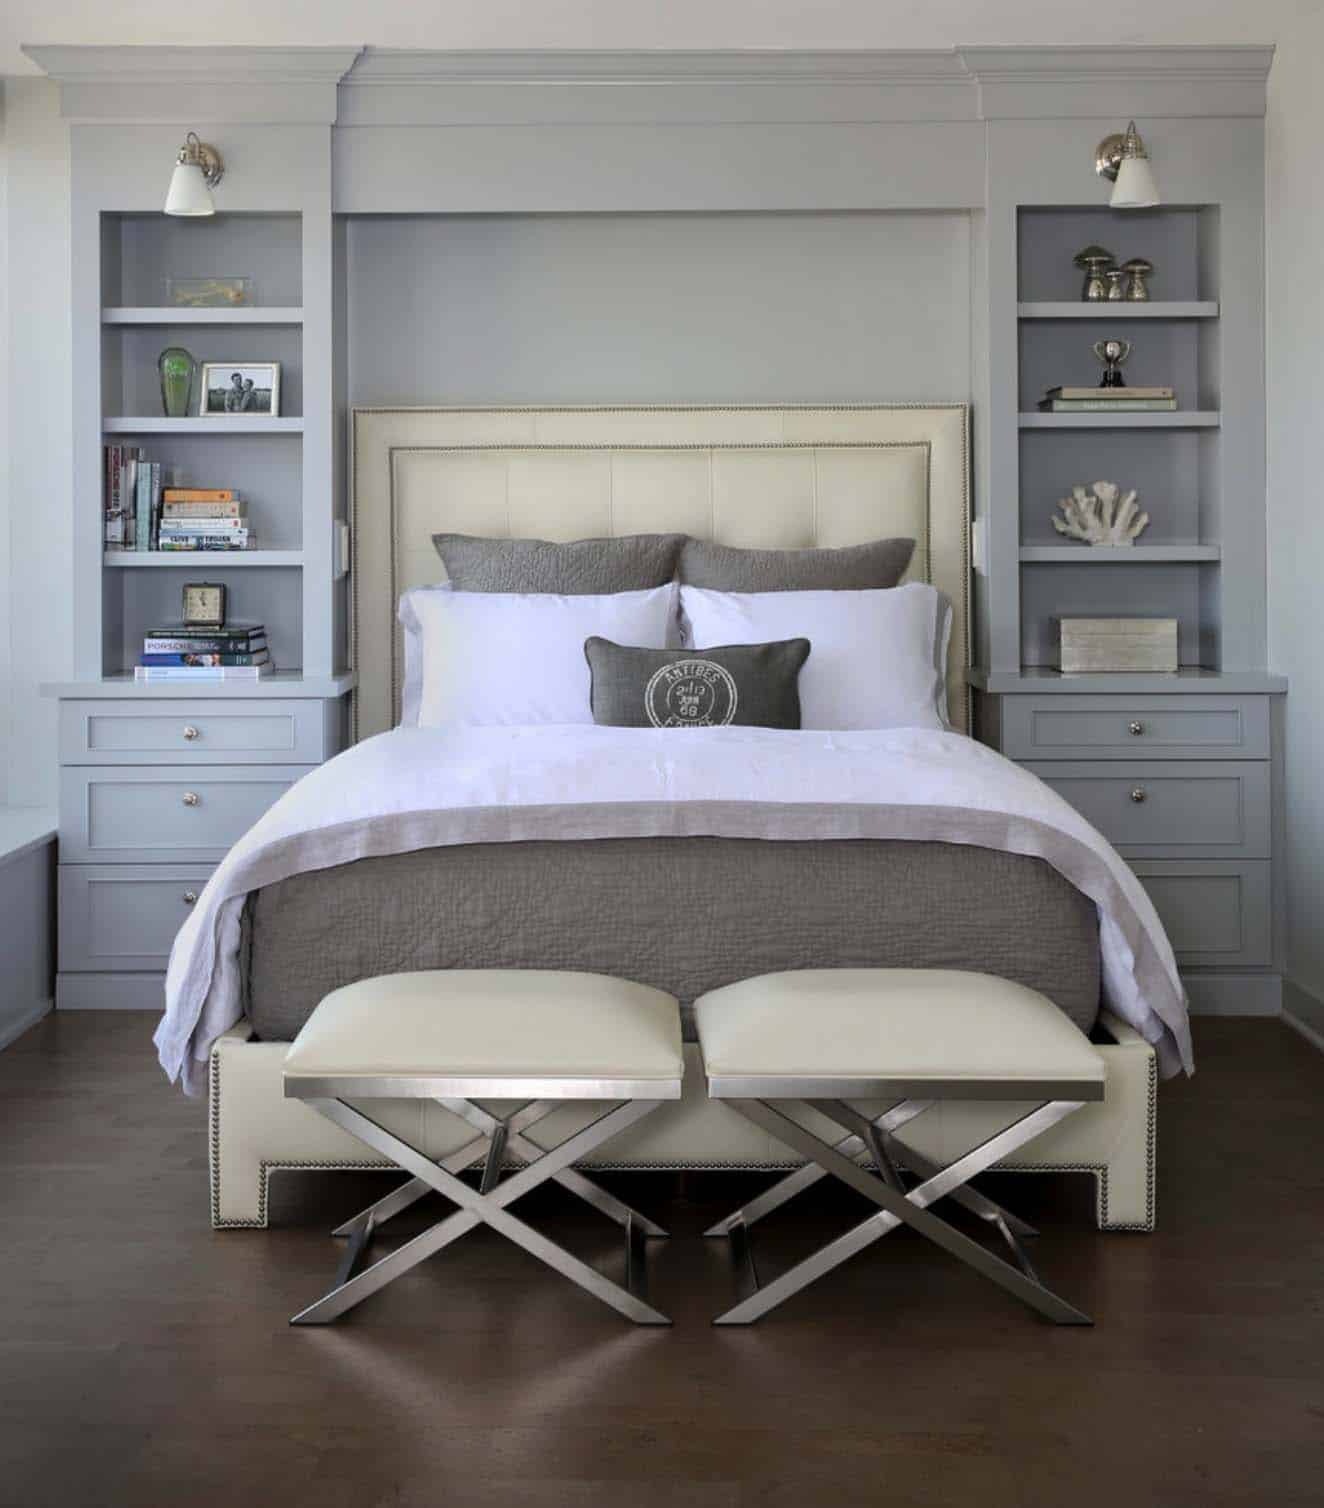 Small Master Bedroom Ideas-10-1 Kindesign